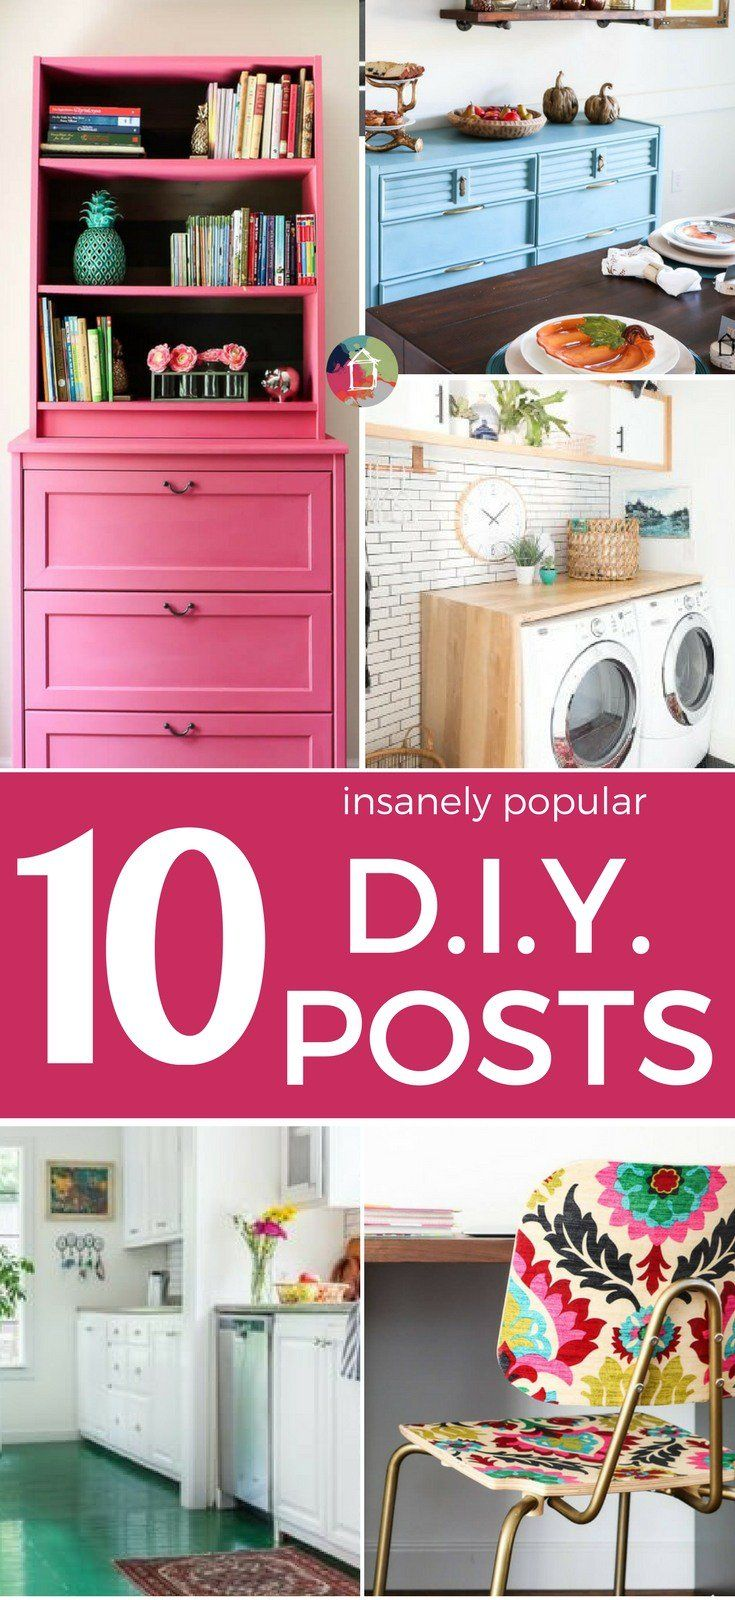 These top 10 most popular posts of 2017 include many DIY projects and more! Ther...